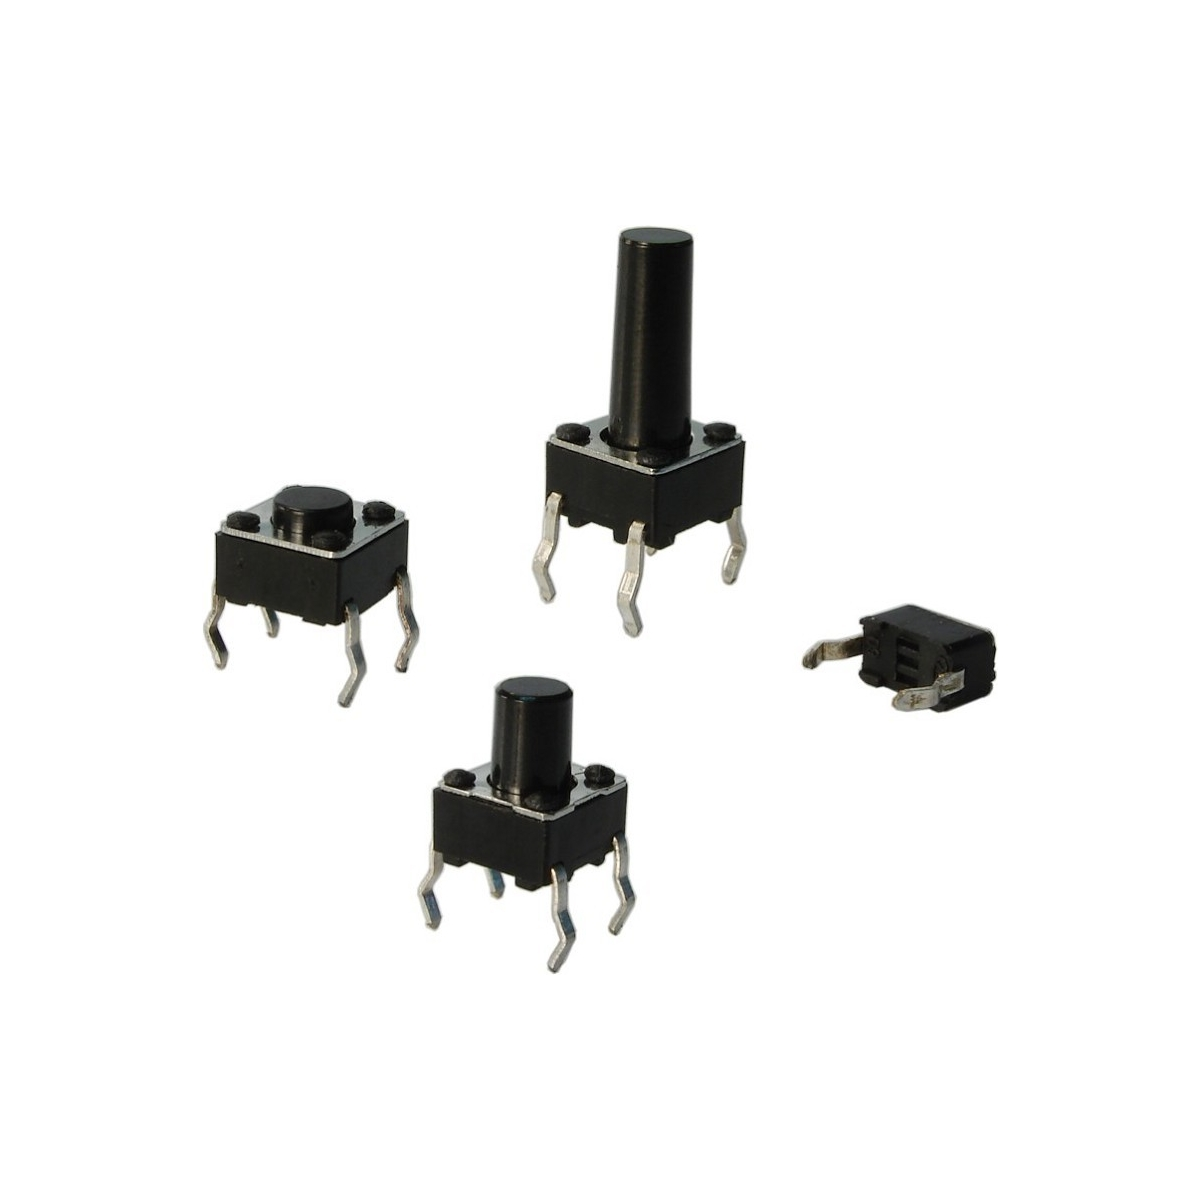 CHAVE TACTIL A 06 - 7,7 - ( 6 X 6 X 7,7 ) METALTEX